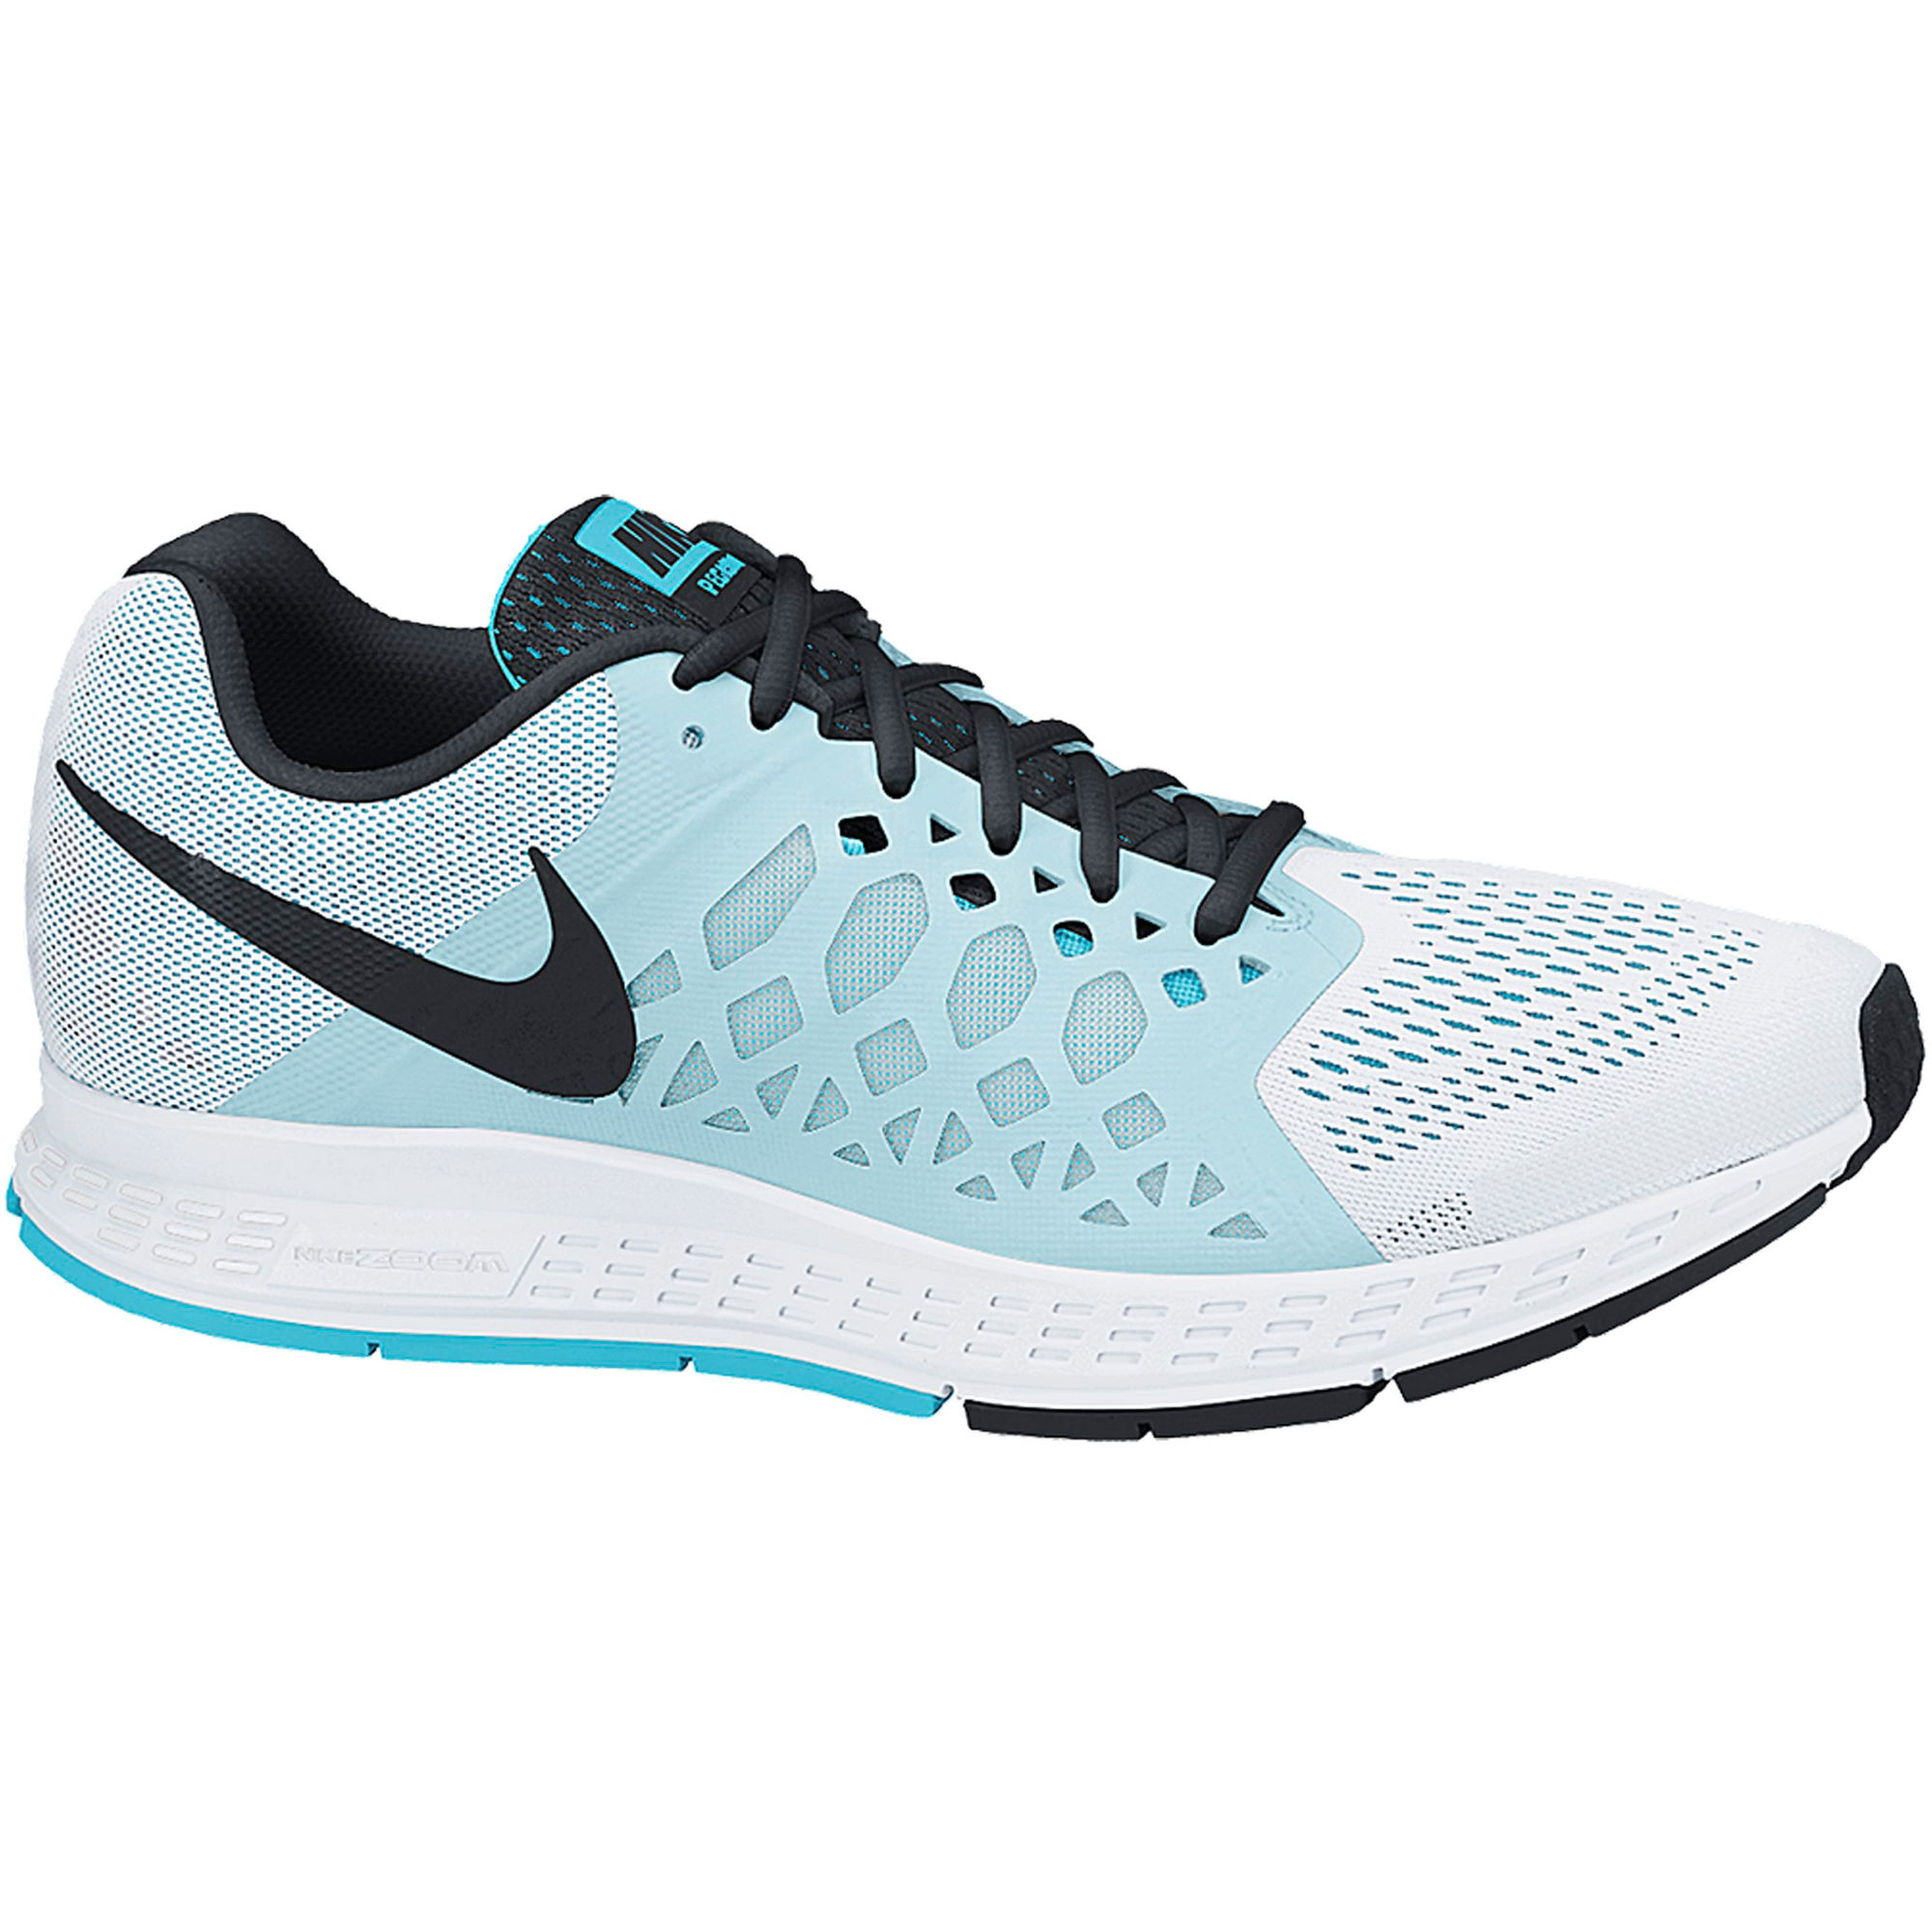 wiggle nike women 39 s air zoom pegasus 31 shoes sp15 cushion running shoes. Black Bedroom Furniture Sets. Home Design Ideas